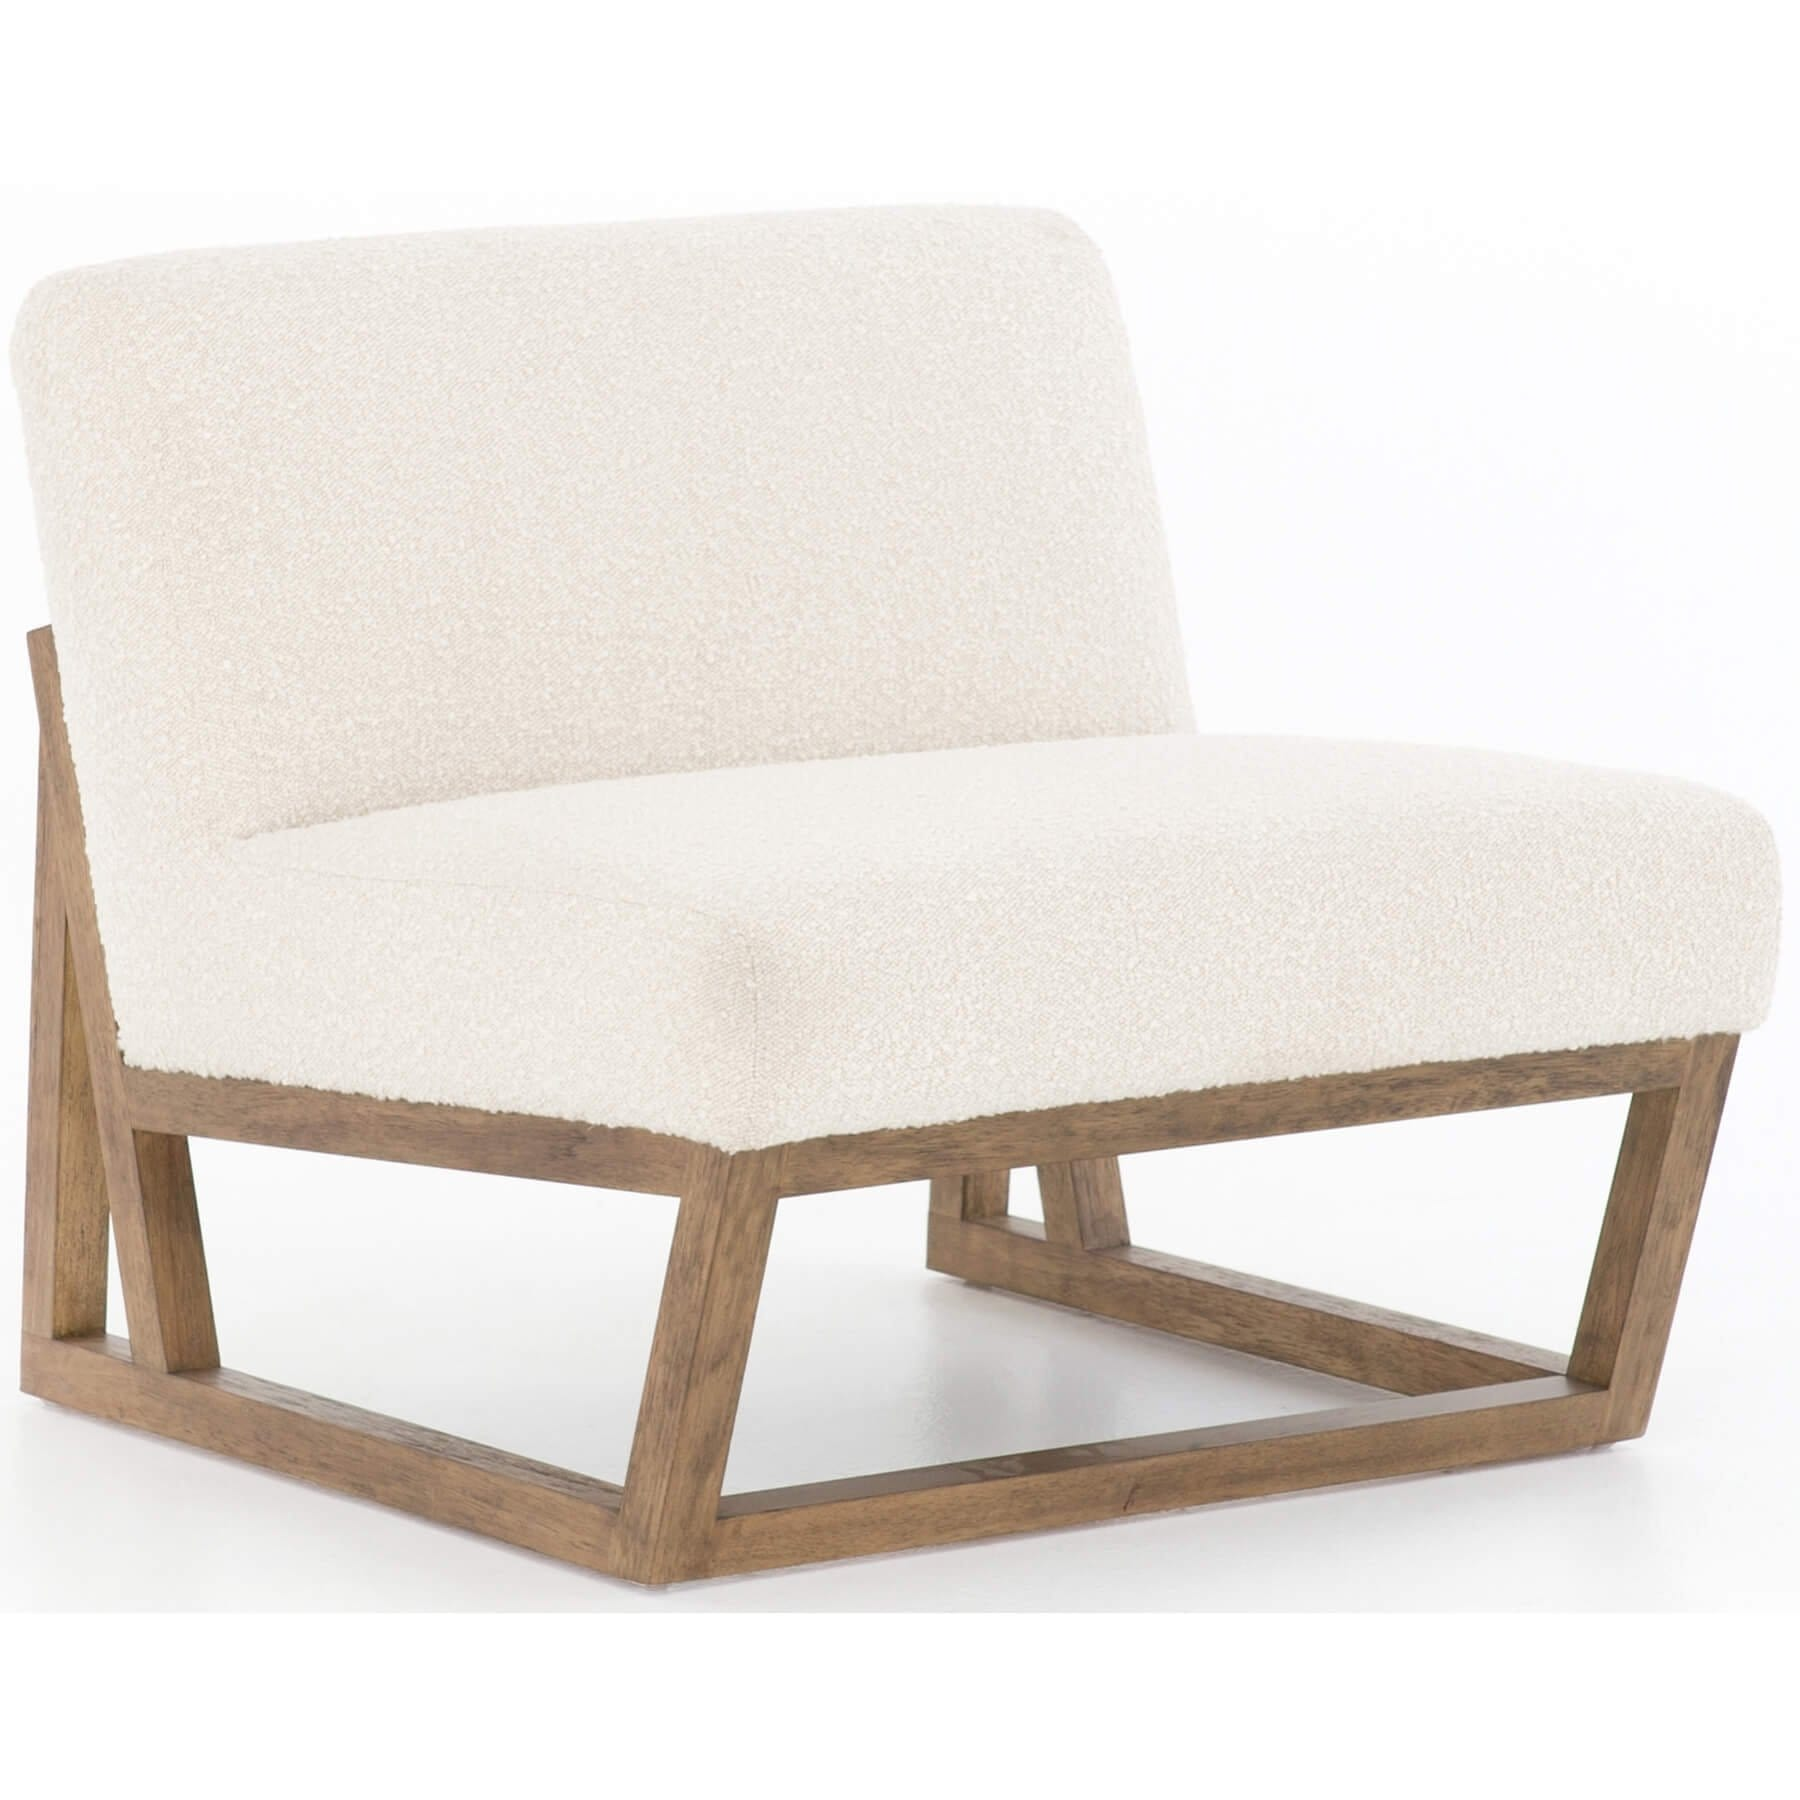 Leoni Chair, Knoll Natural